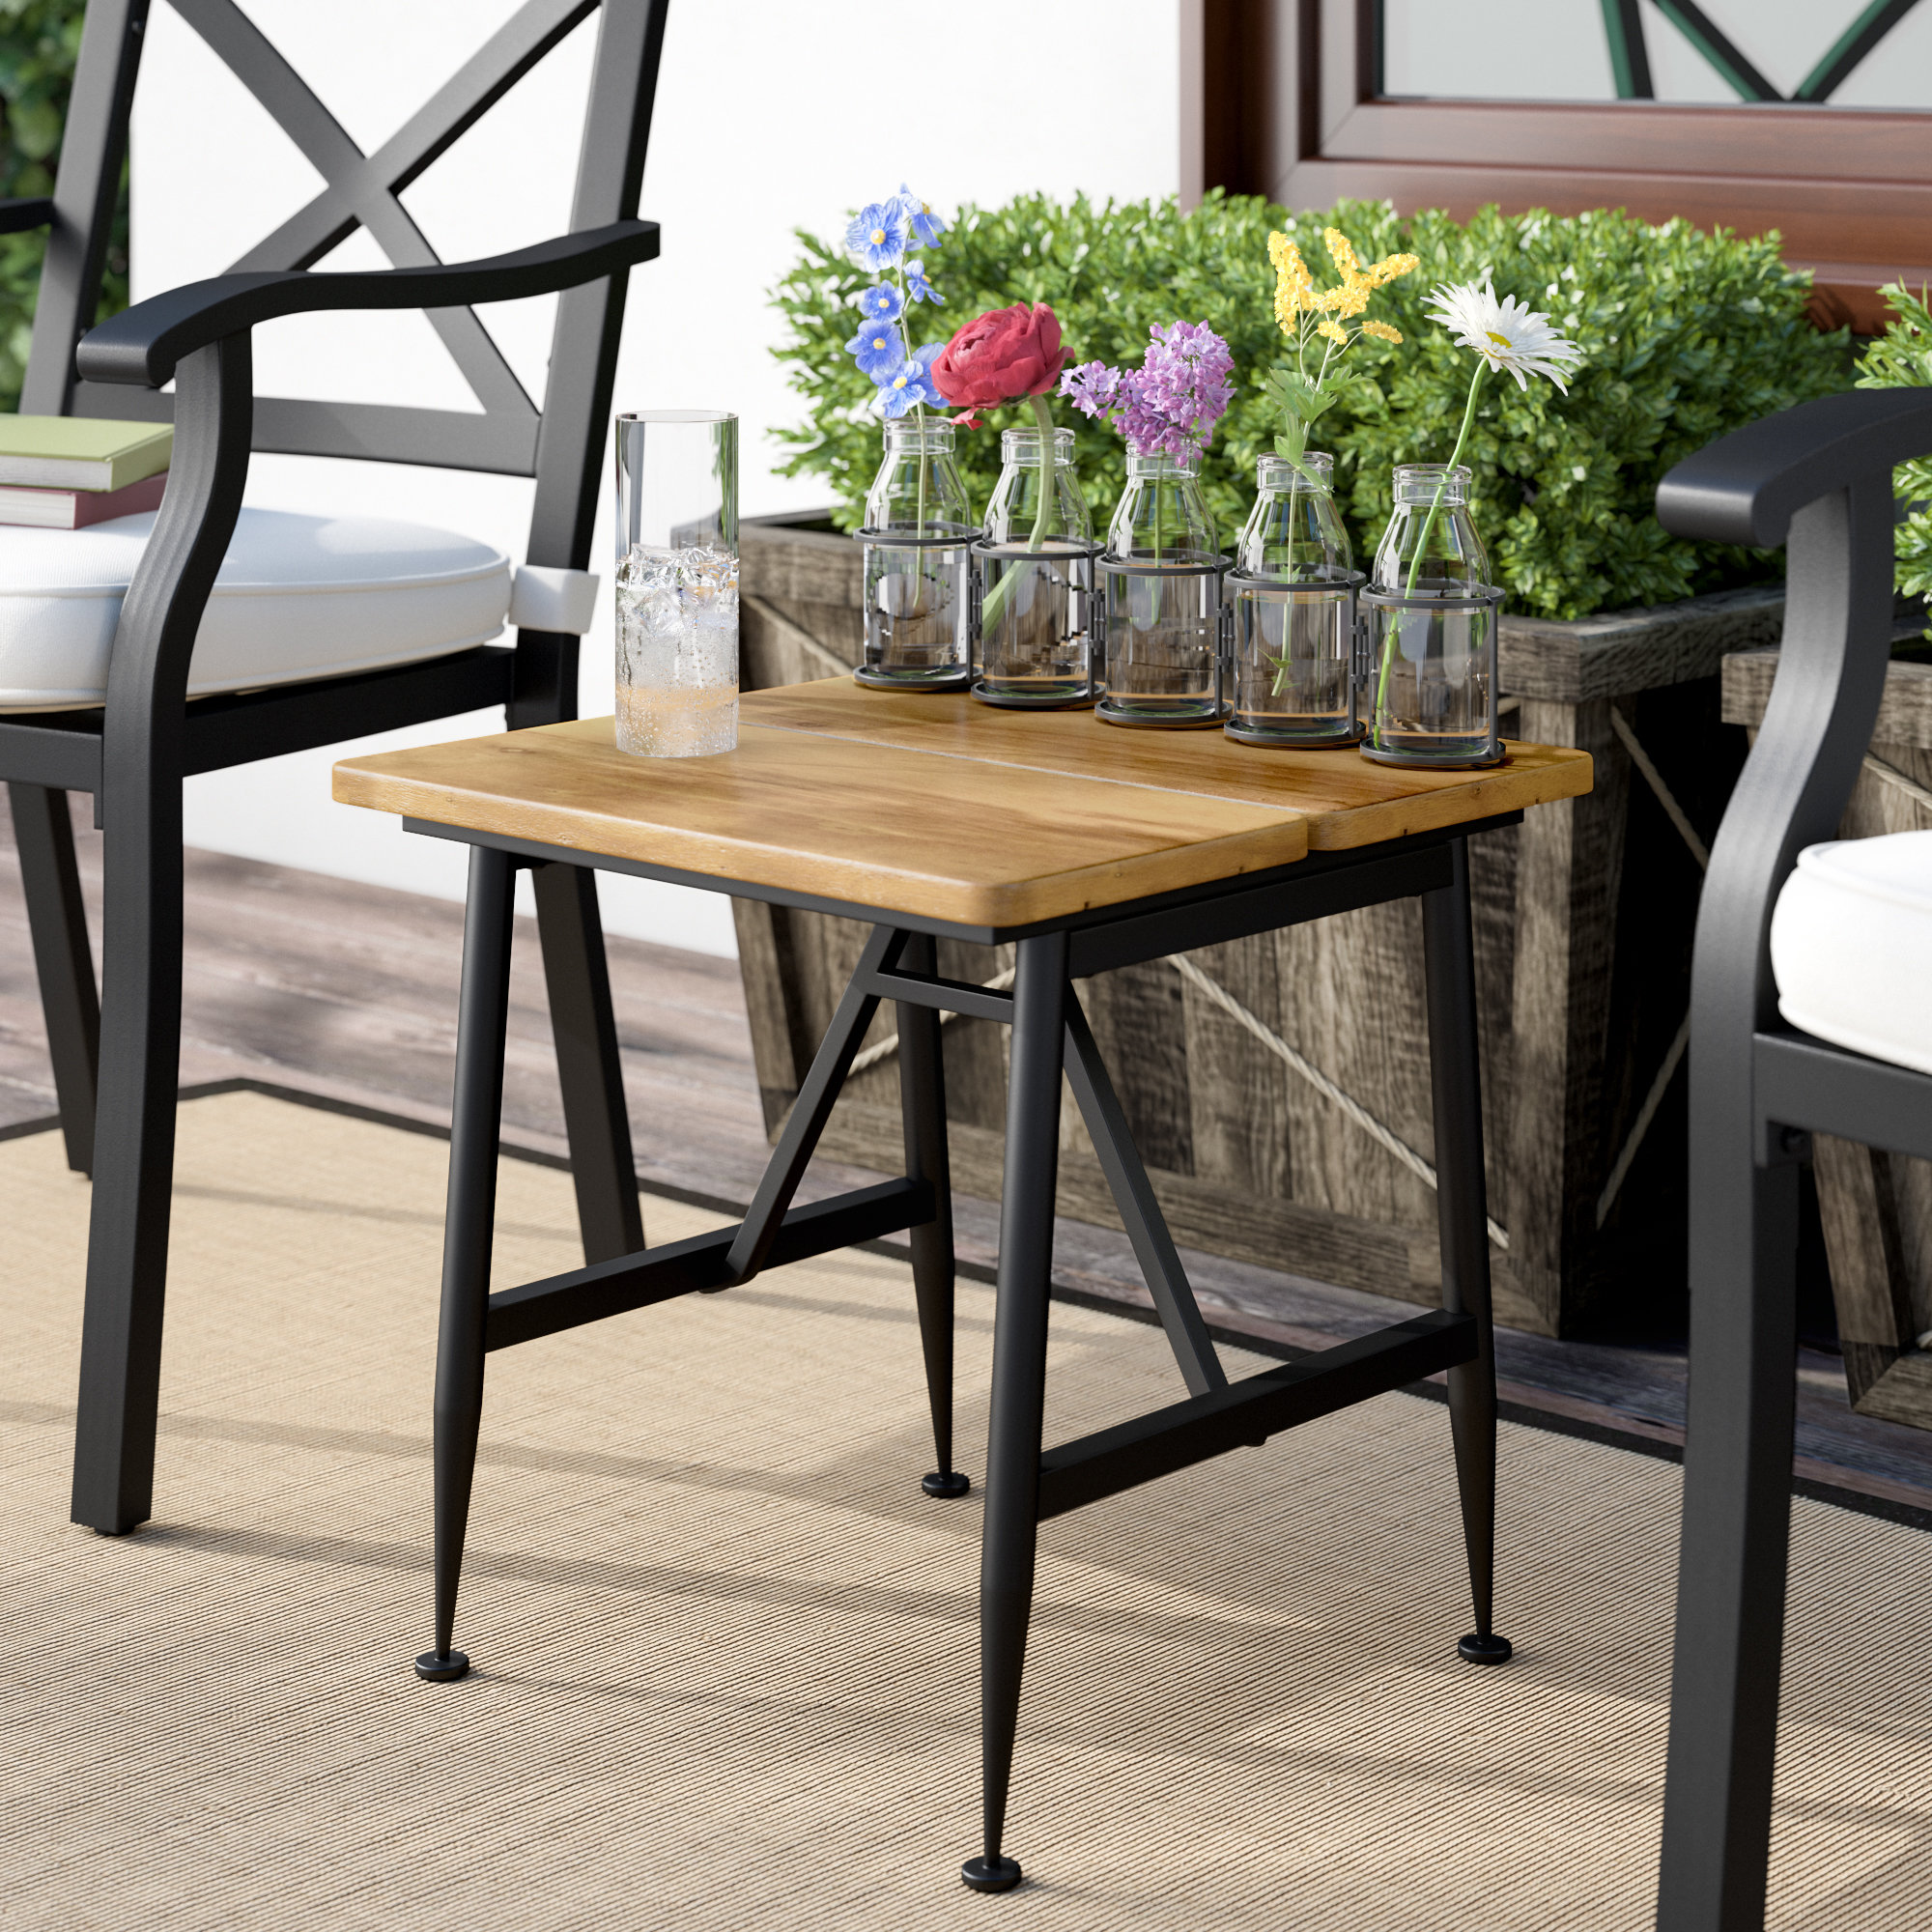 gracie oaks frankston outdoor wood accent table reviews stacking tables half round top mosaic patio furniture clearance odd coffee pier one flesner brushed steel lamp with usb